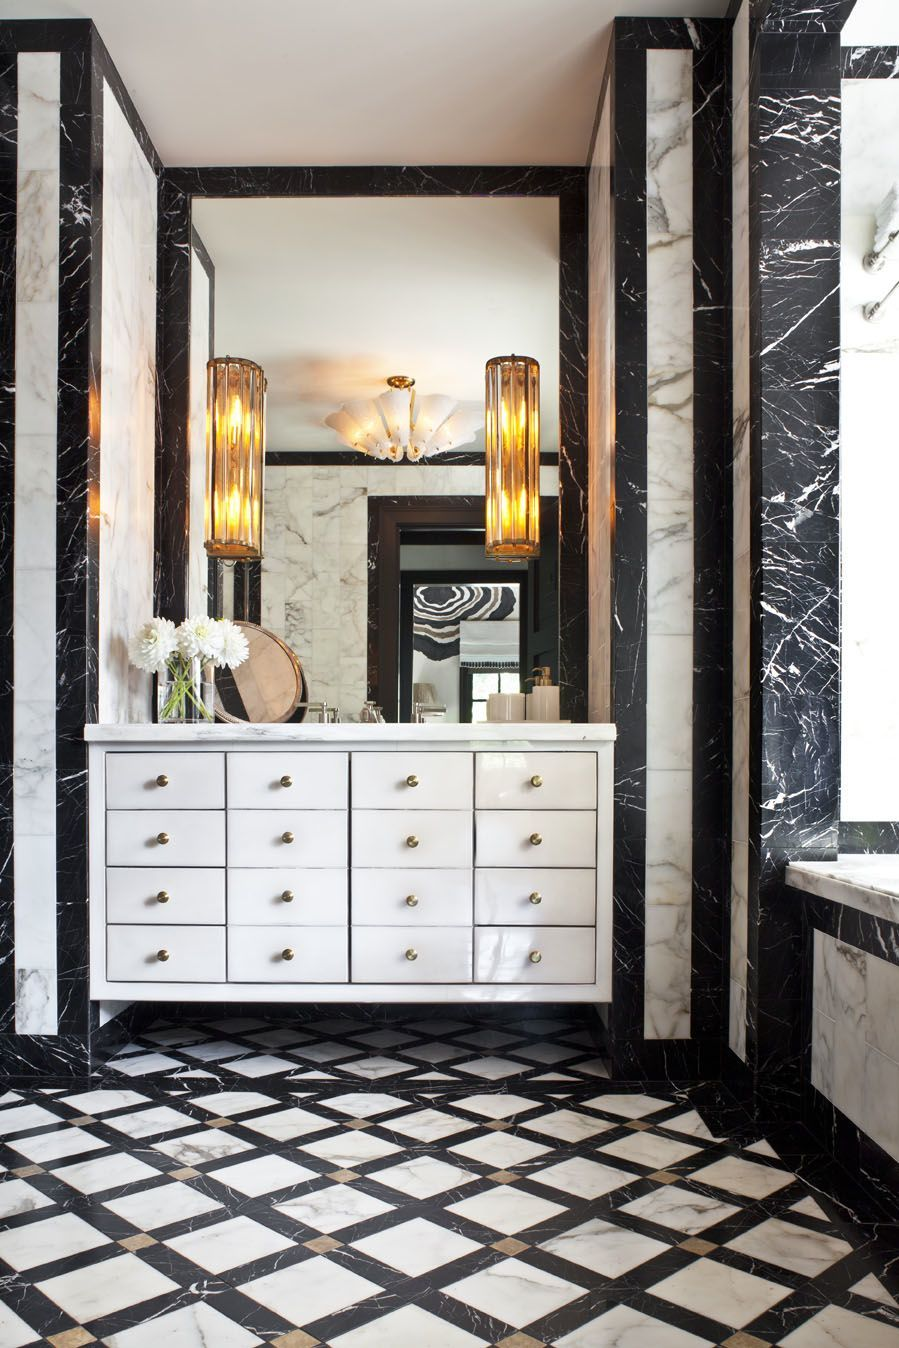 Powder room exquisite craftsmanship using the finest of marble materials cleverly conceived stunning